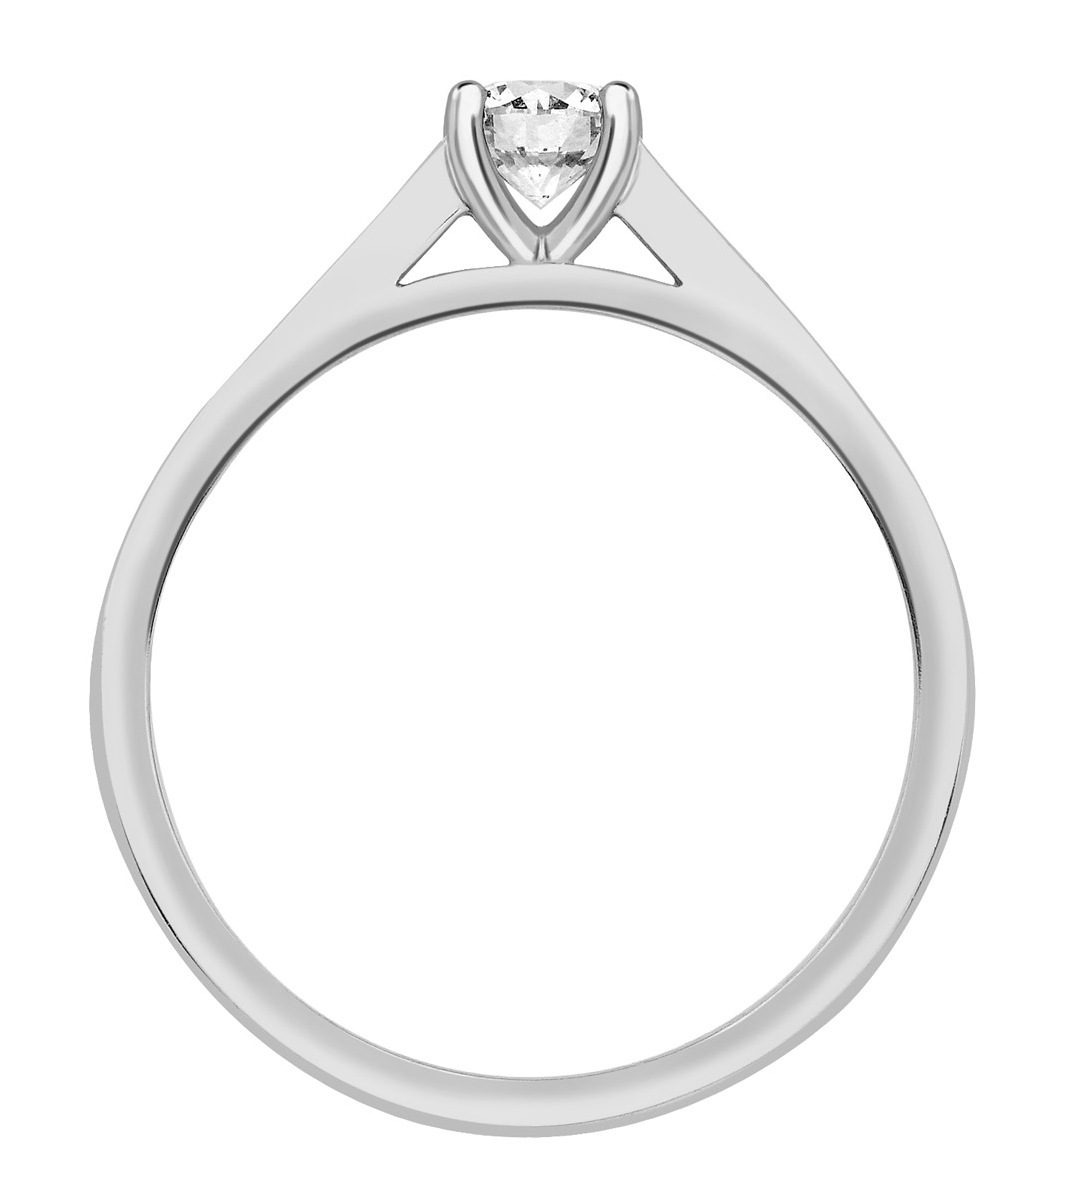 Round Four Claw White Gold Channel Set Engagement Ring CRC739 Image 2